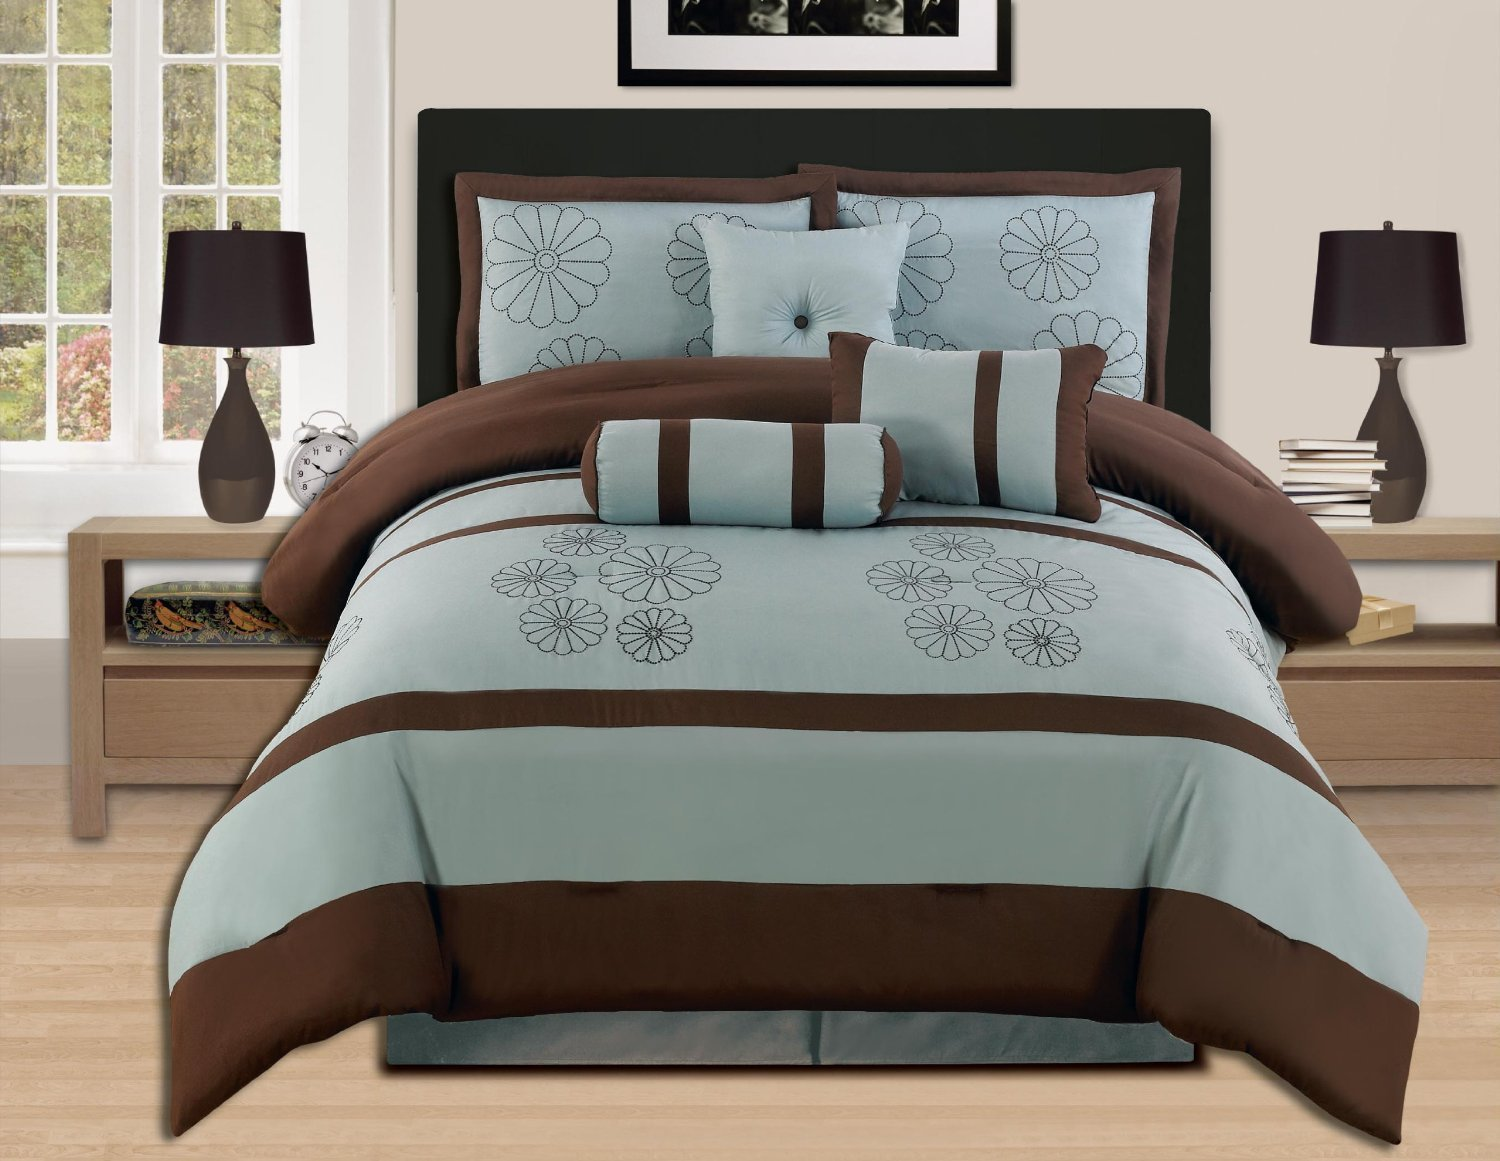 7 Pieces Luxury Embroidery Comforter Set Bed-in-a-bag (Oversize) Bedding (Aqua Blue/Brwon, Queen) Ahf COMINHKR088263